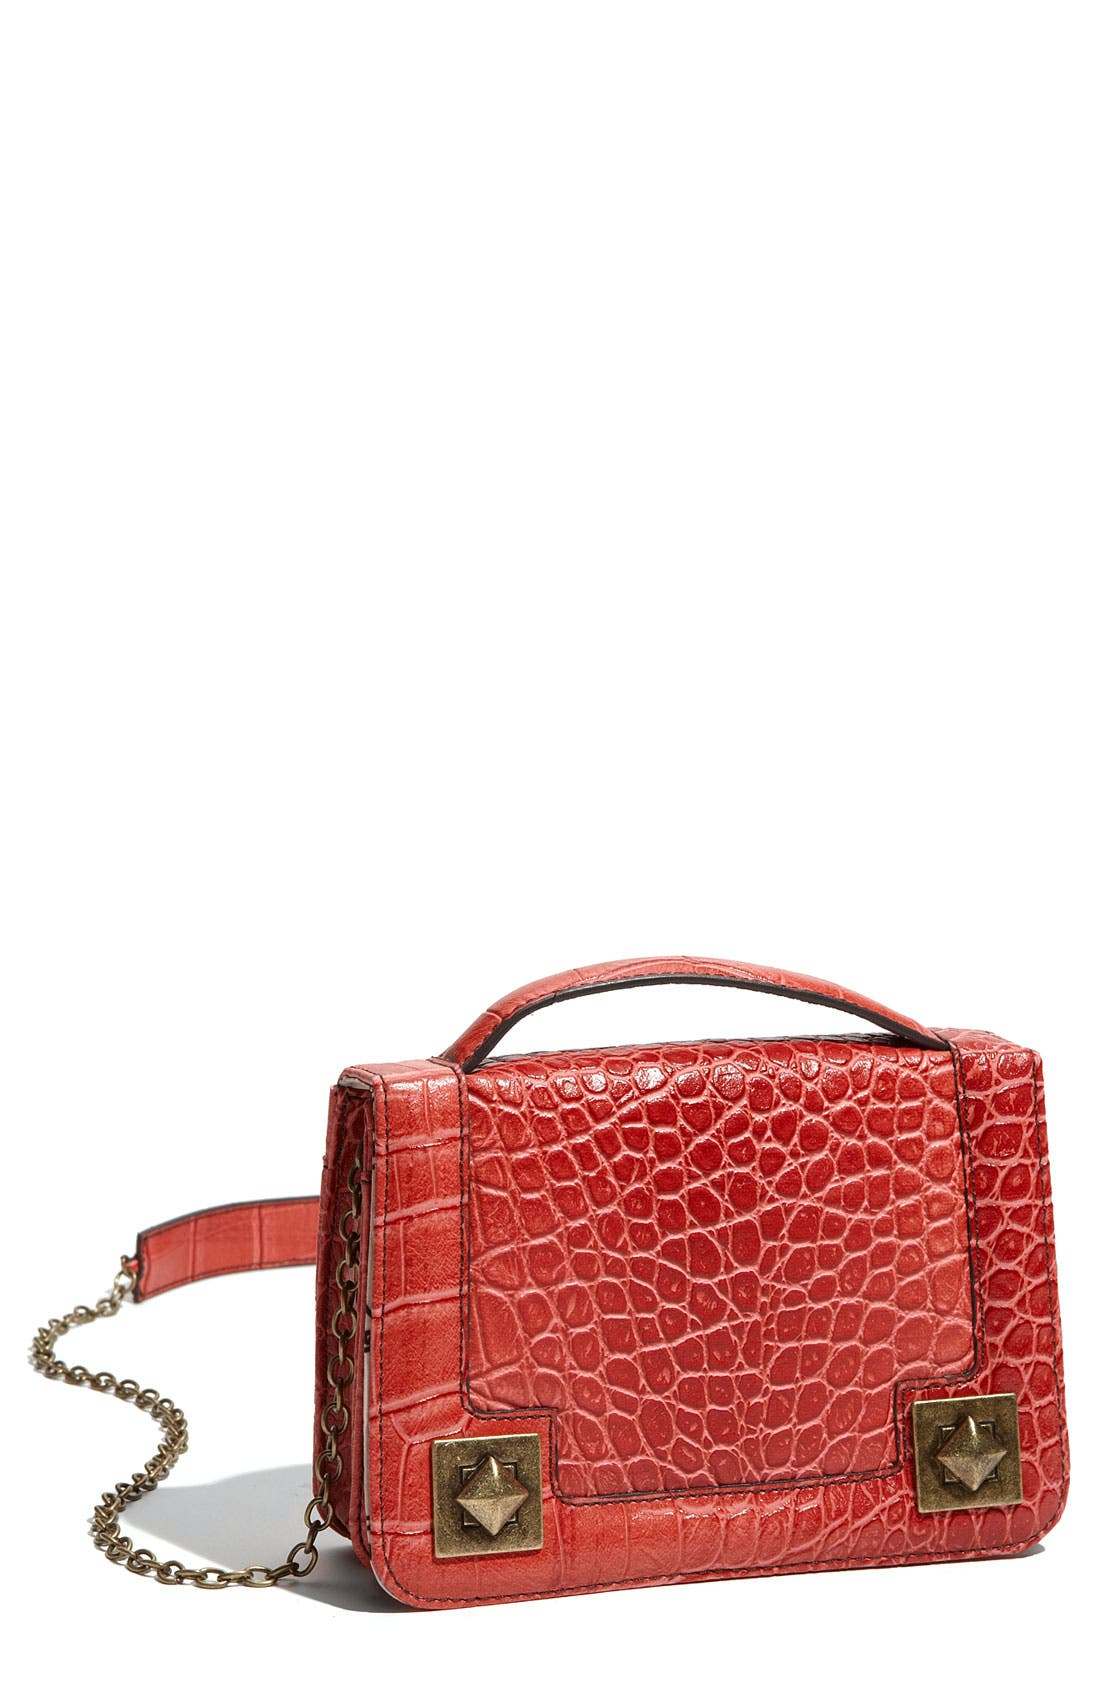 Alternate Image 1 Selected - Jessica Simpson 'Bella' Faux Leather Crossbody Bag